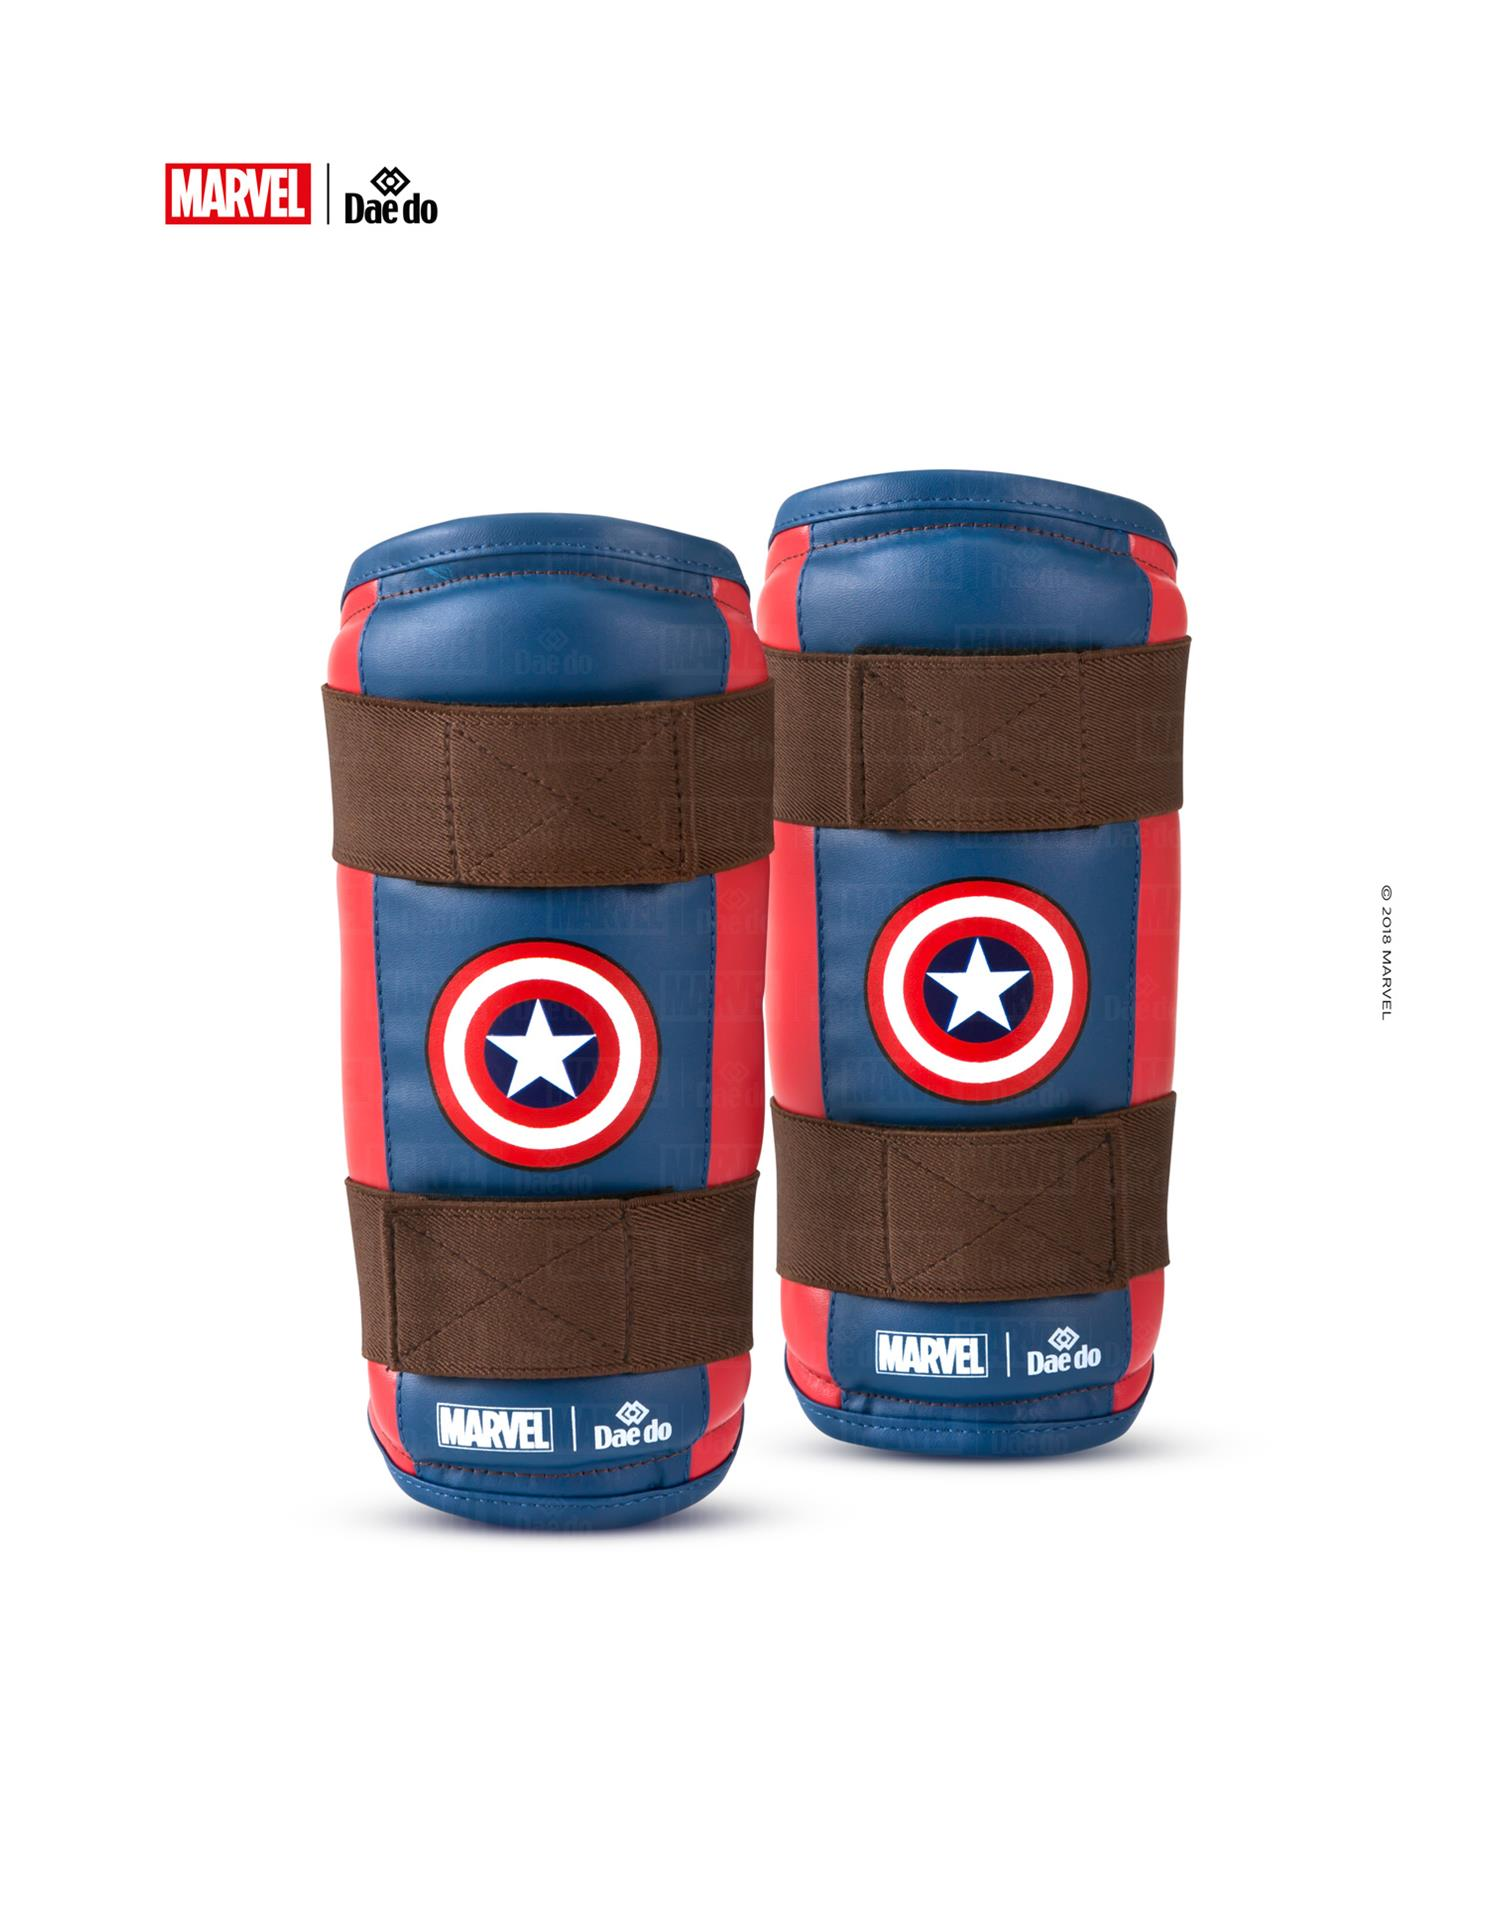 Dae Do Parabraccia Marvel Capitan America (2XS)